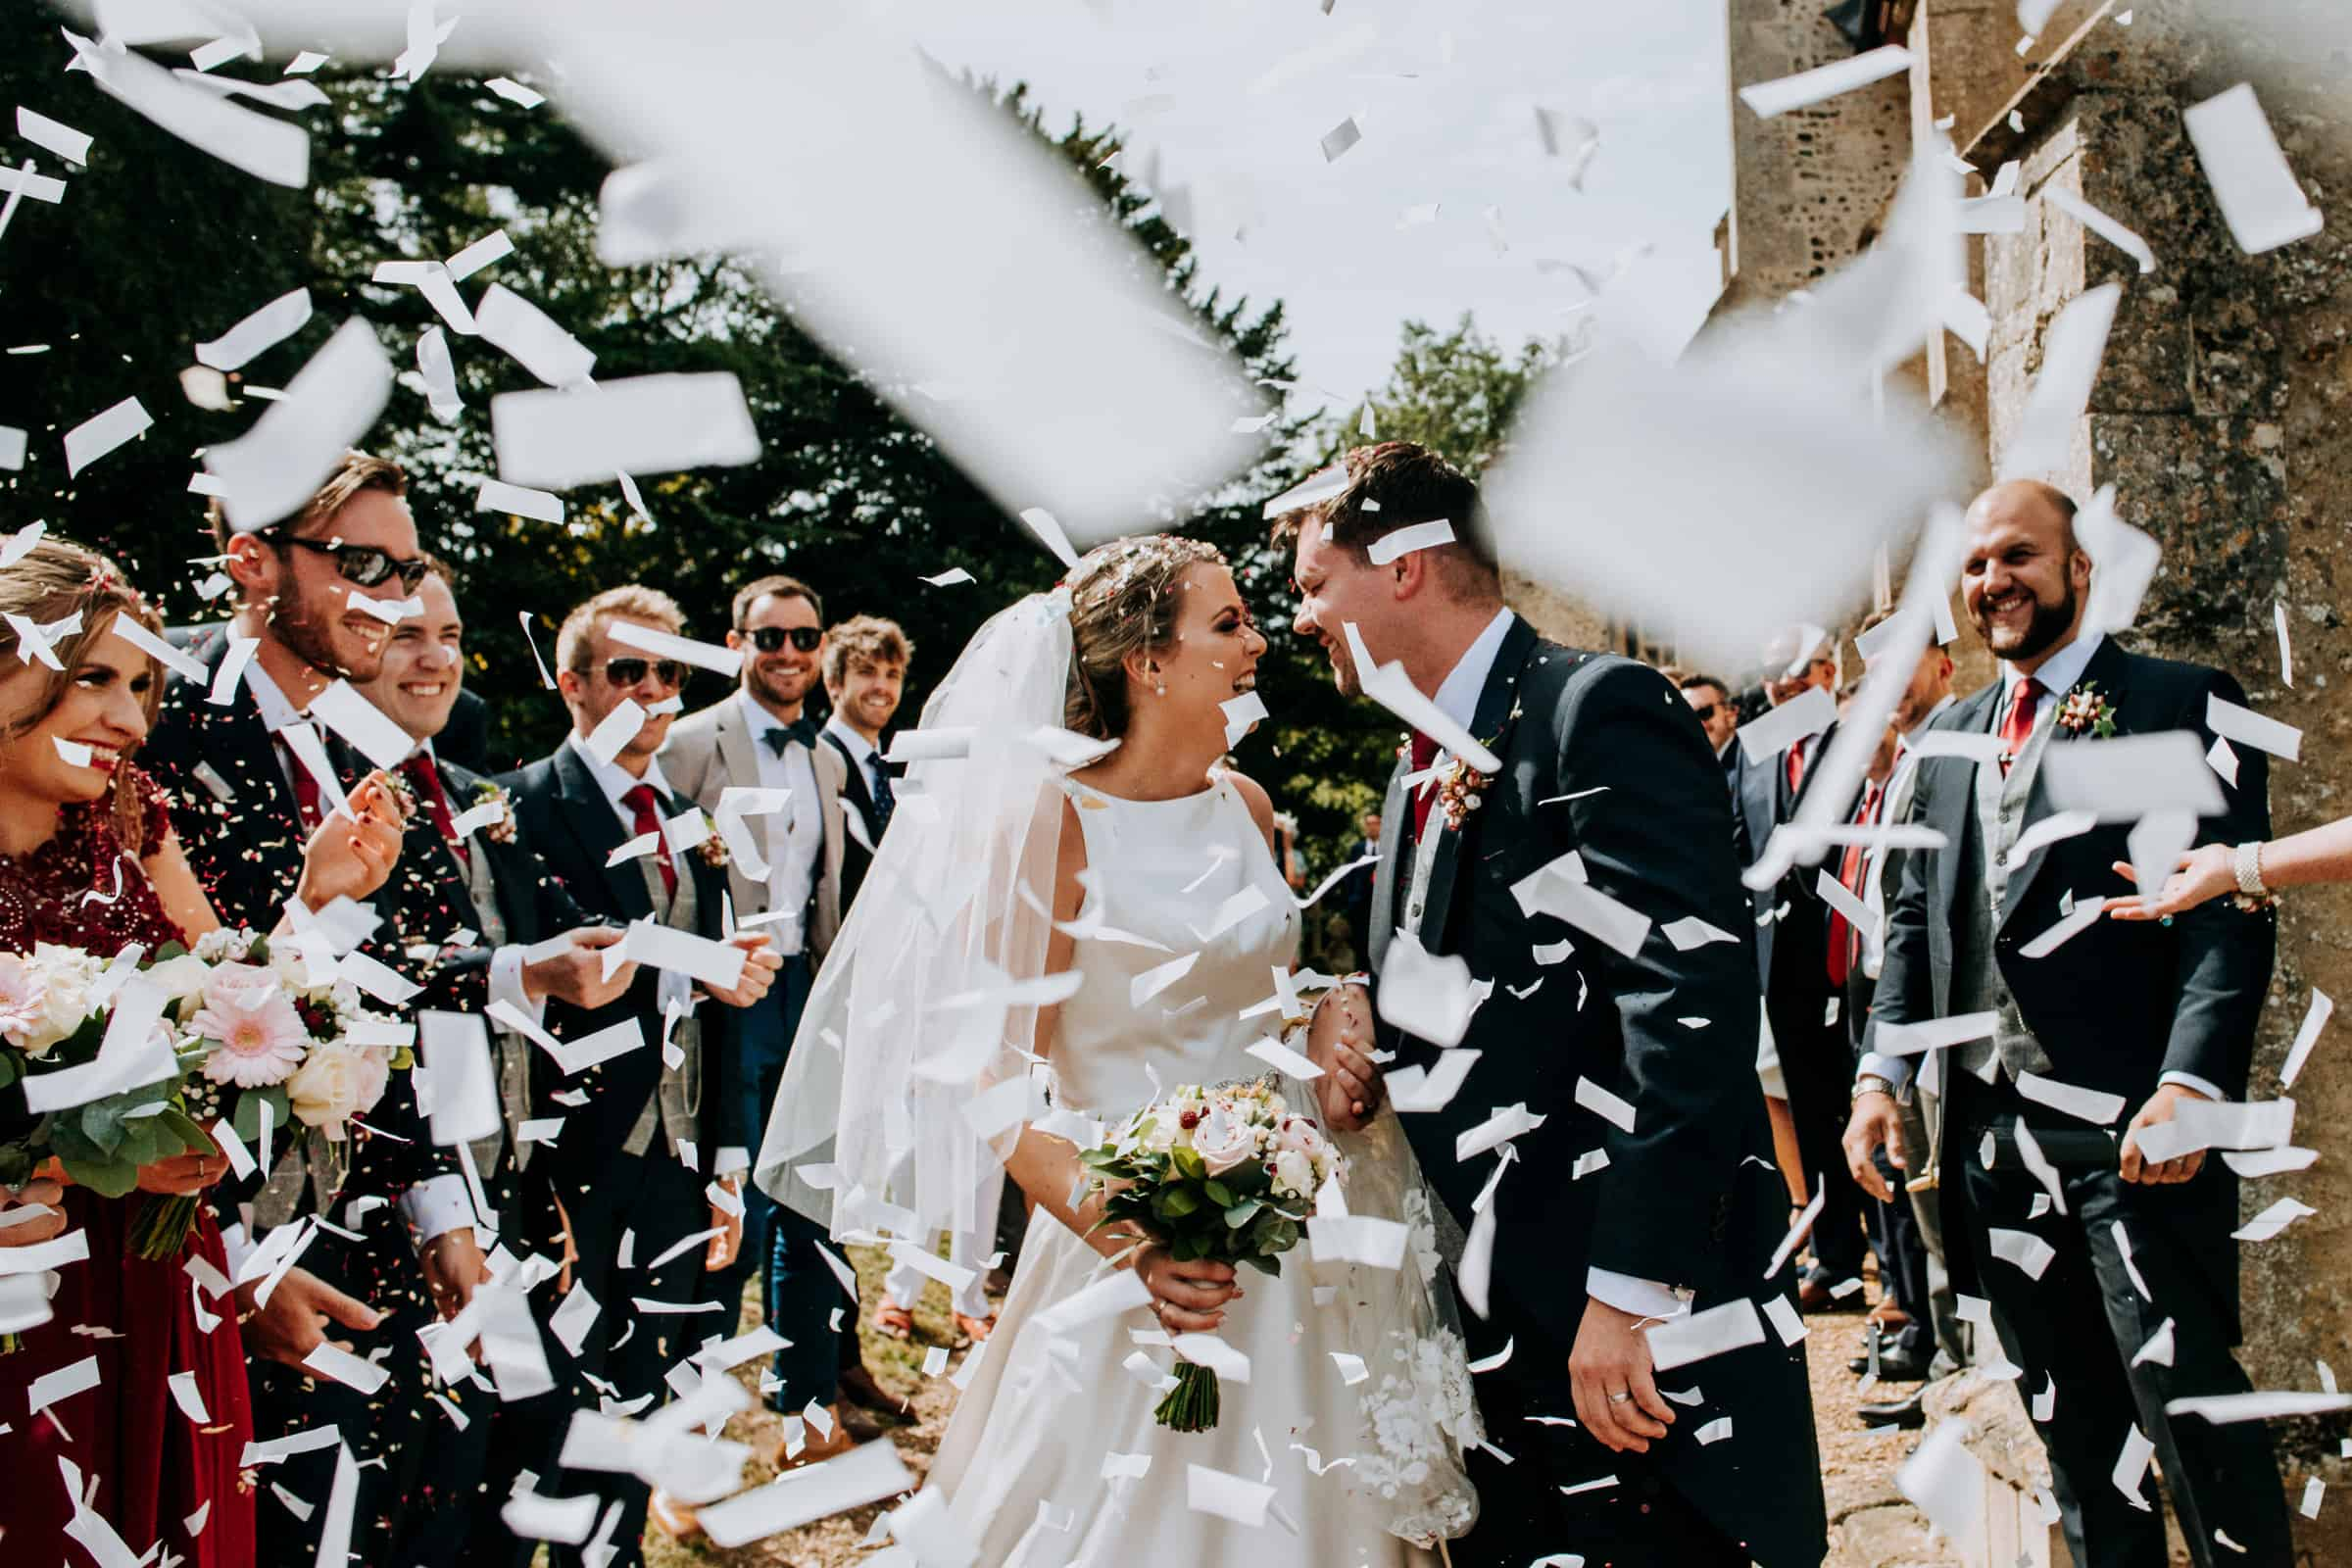 A bride and groom are showered with confetti on their wedding day